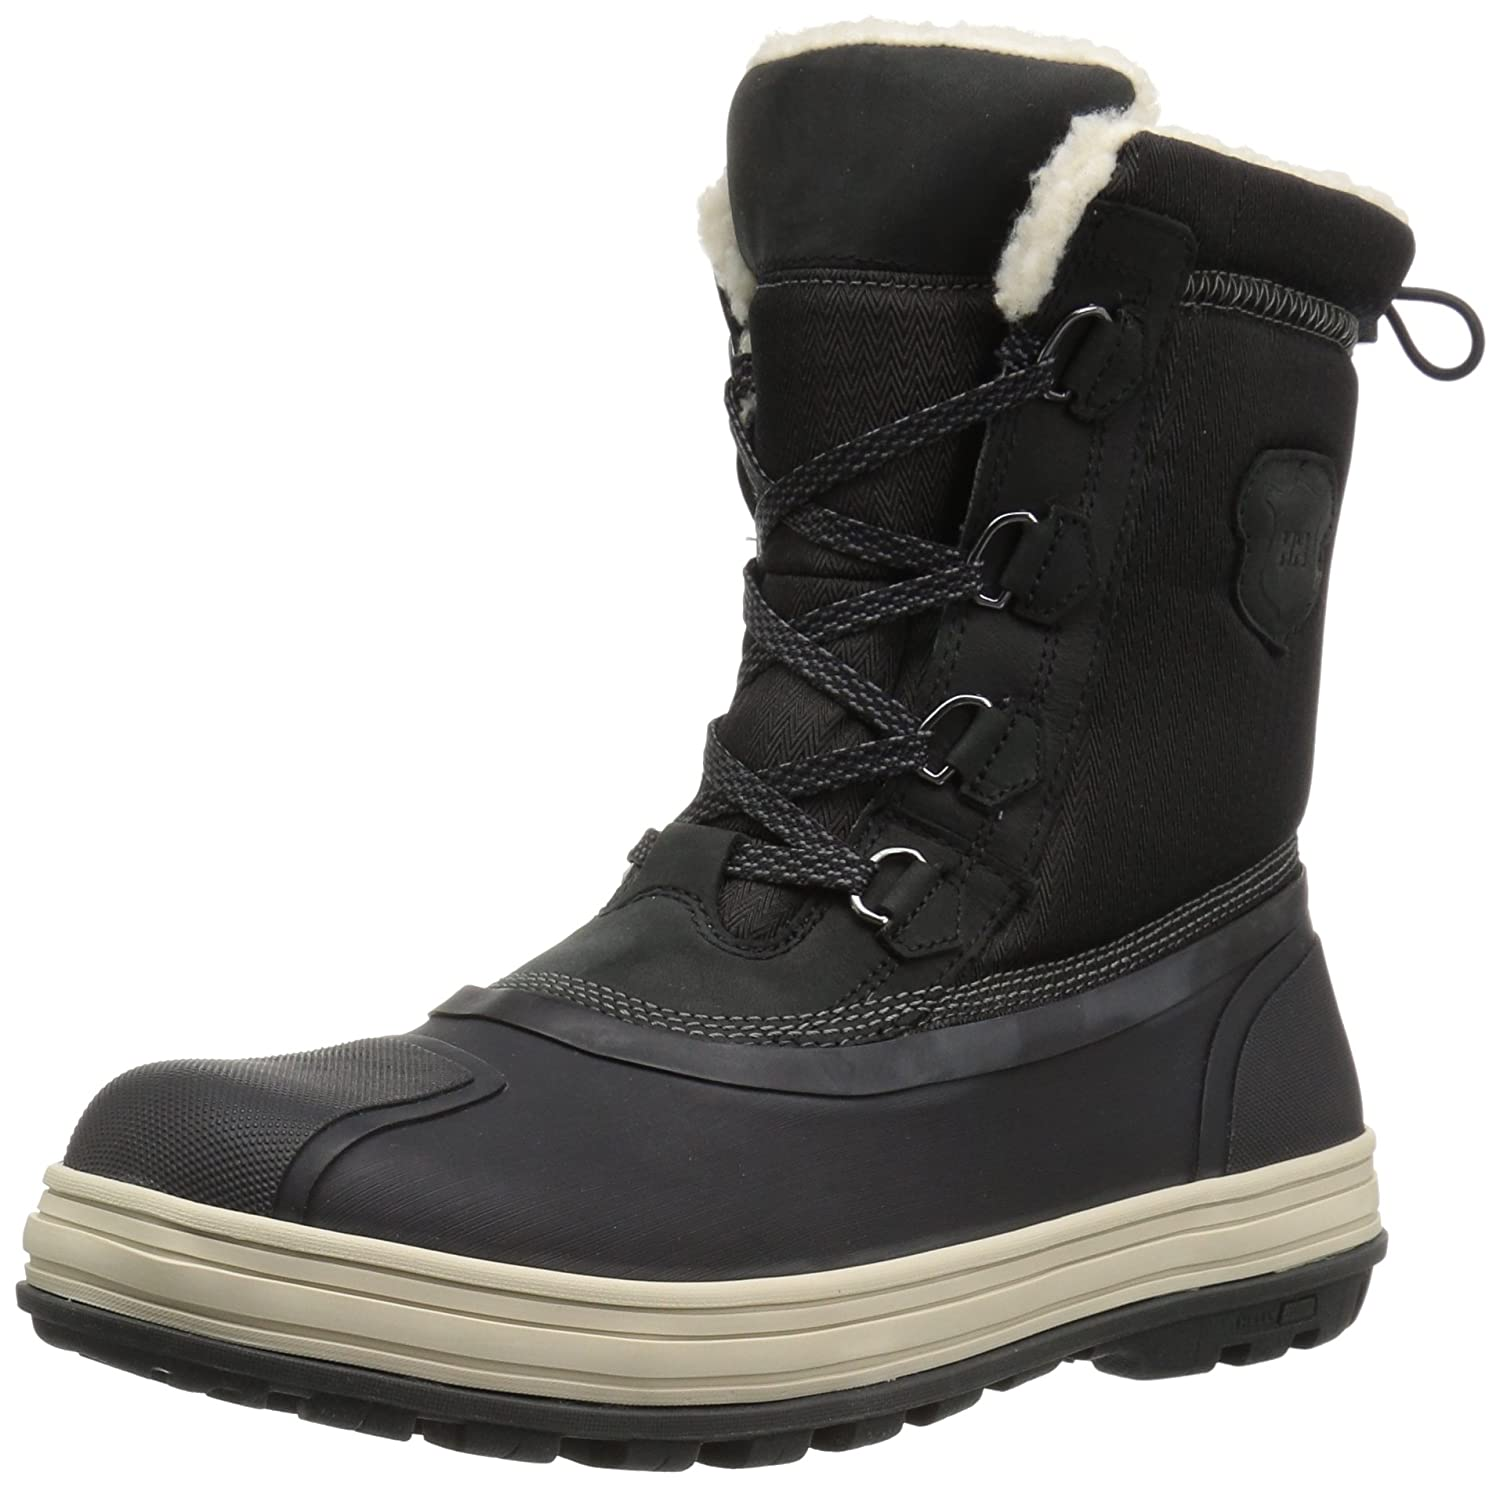 Helly Hansen Women's Framheim Snow Boot B01JLSNHJC 8 B(M) US|Black/Charcoal